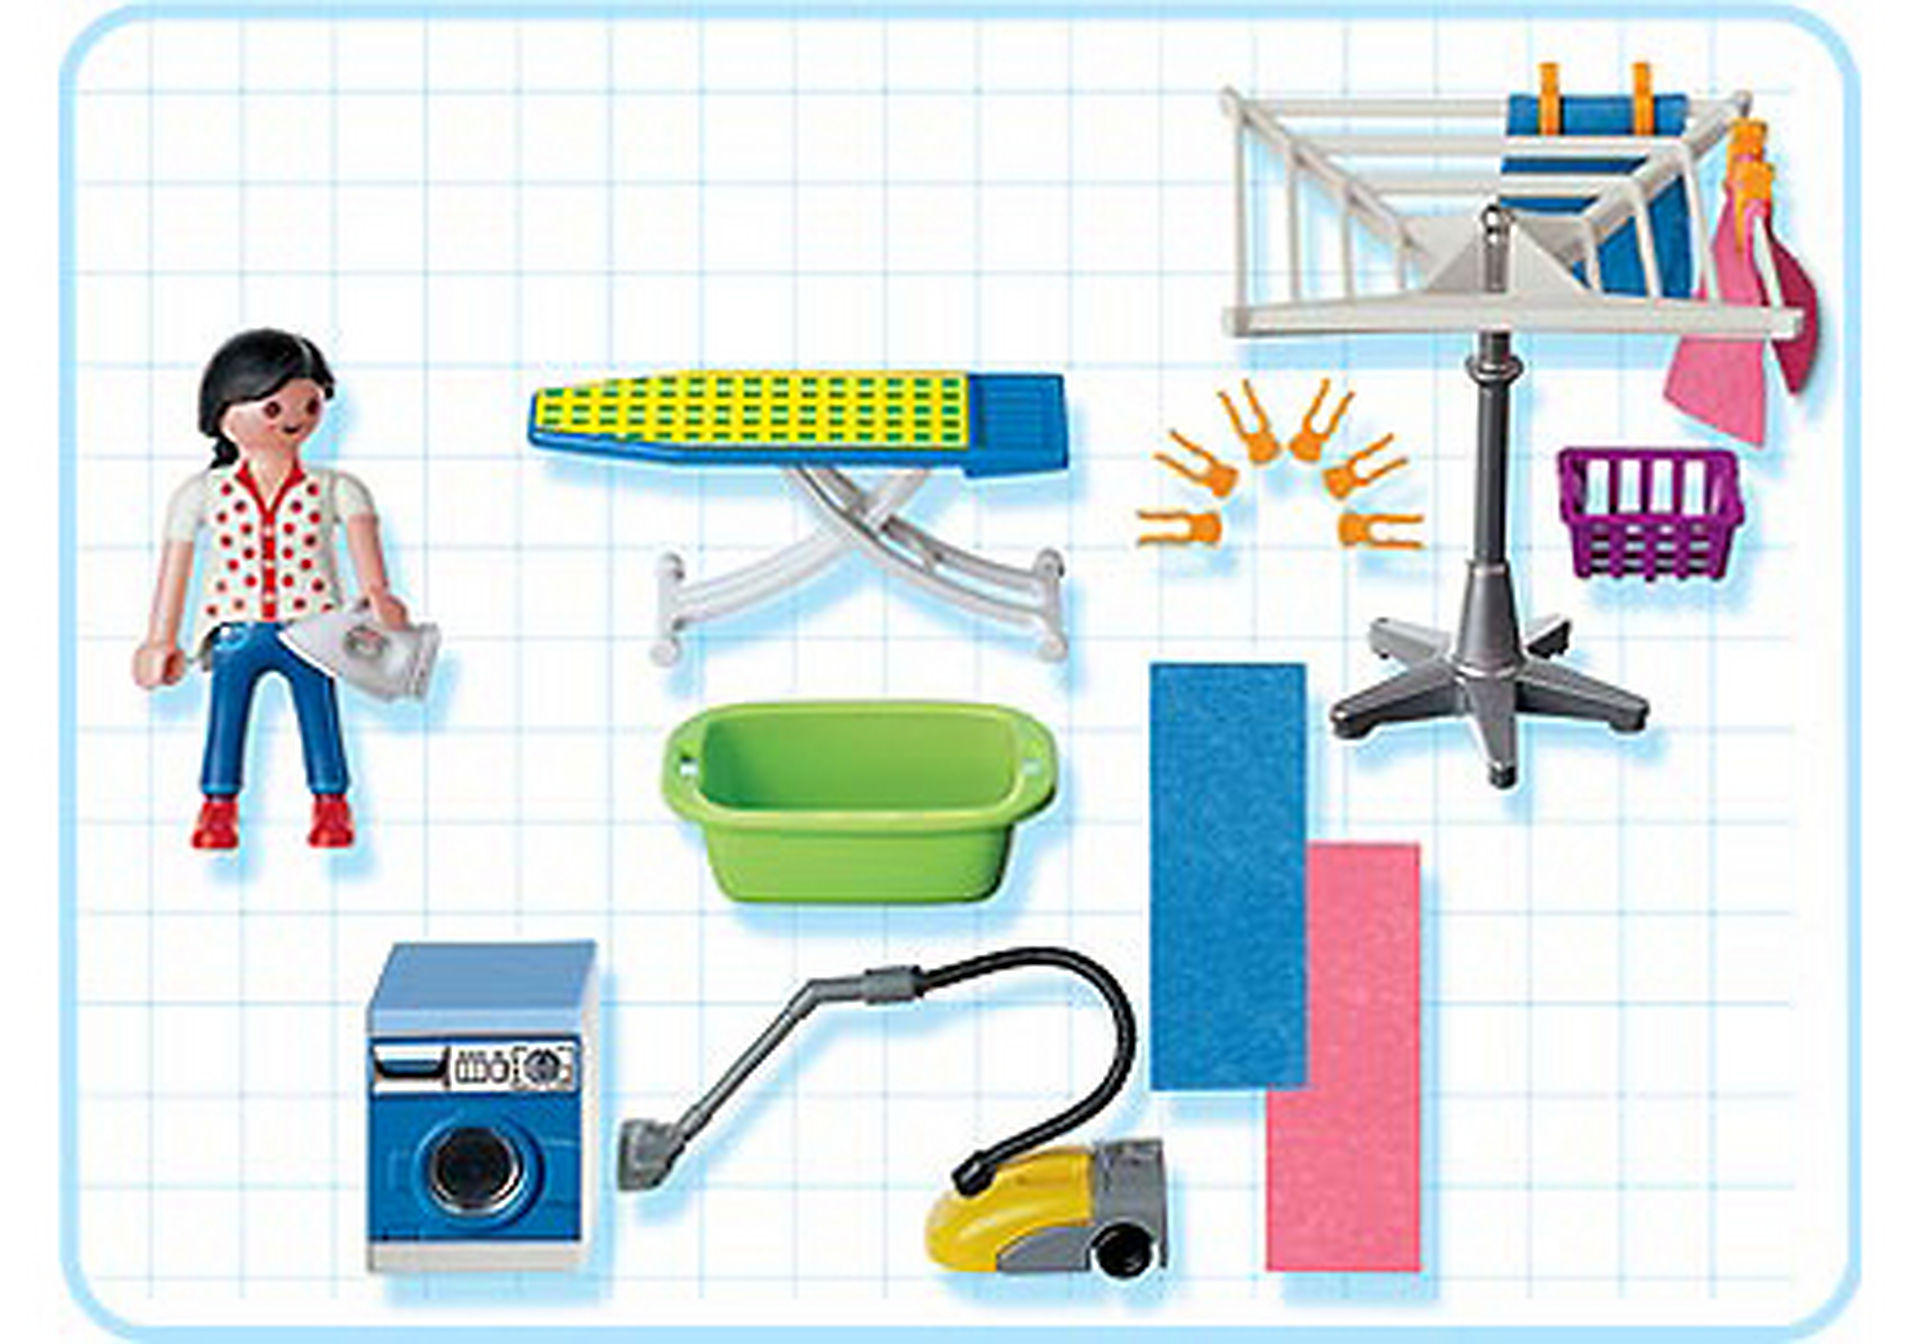 http://media.playmobil.com/i/playmobil/3206-C_product_box_back/Hauswirtschaftsraum